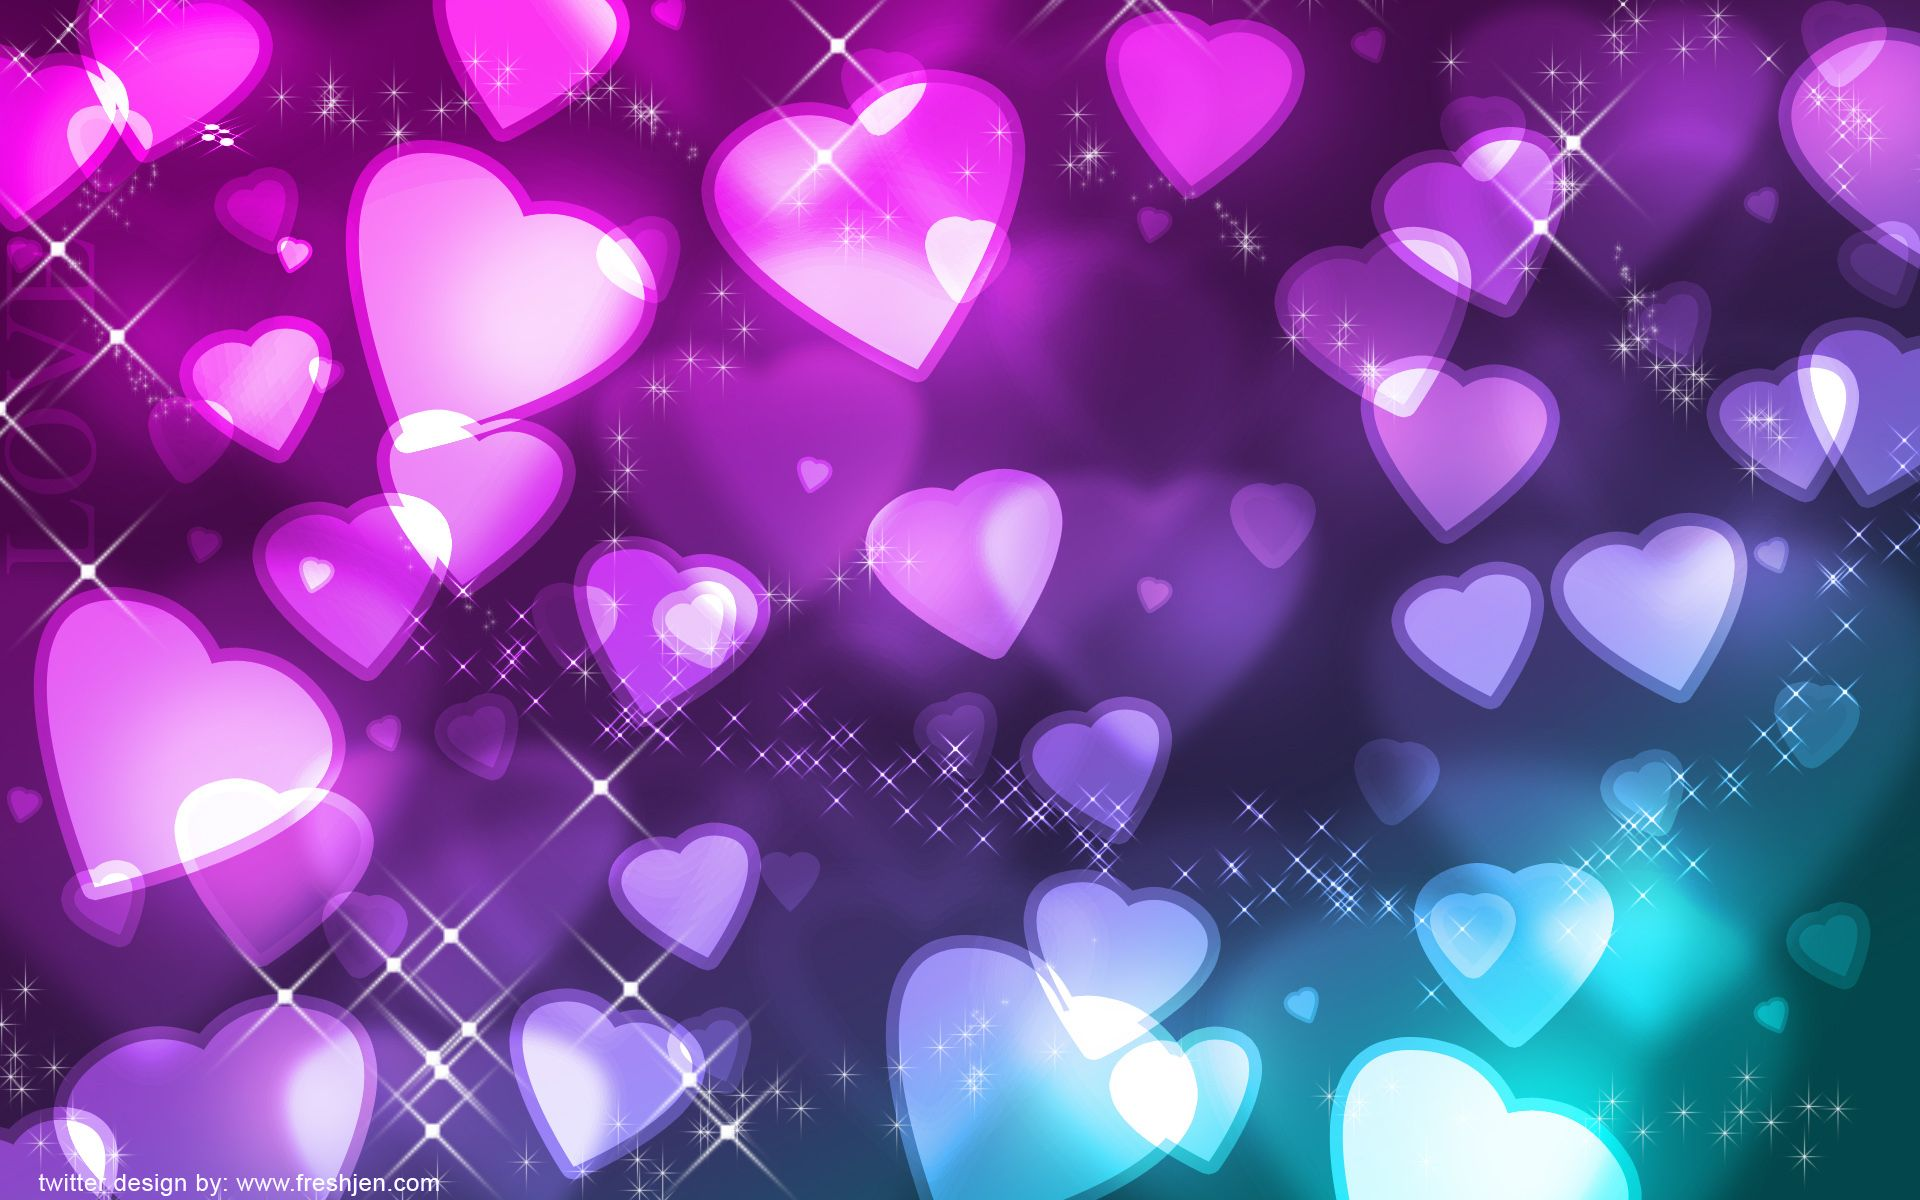 Free Twitter Backgrounds Heart Wallpaper Hd Heart Wallpaper Colorful Heart